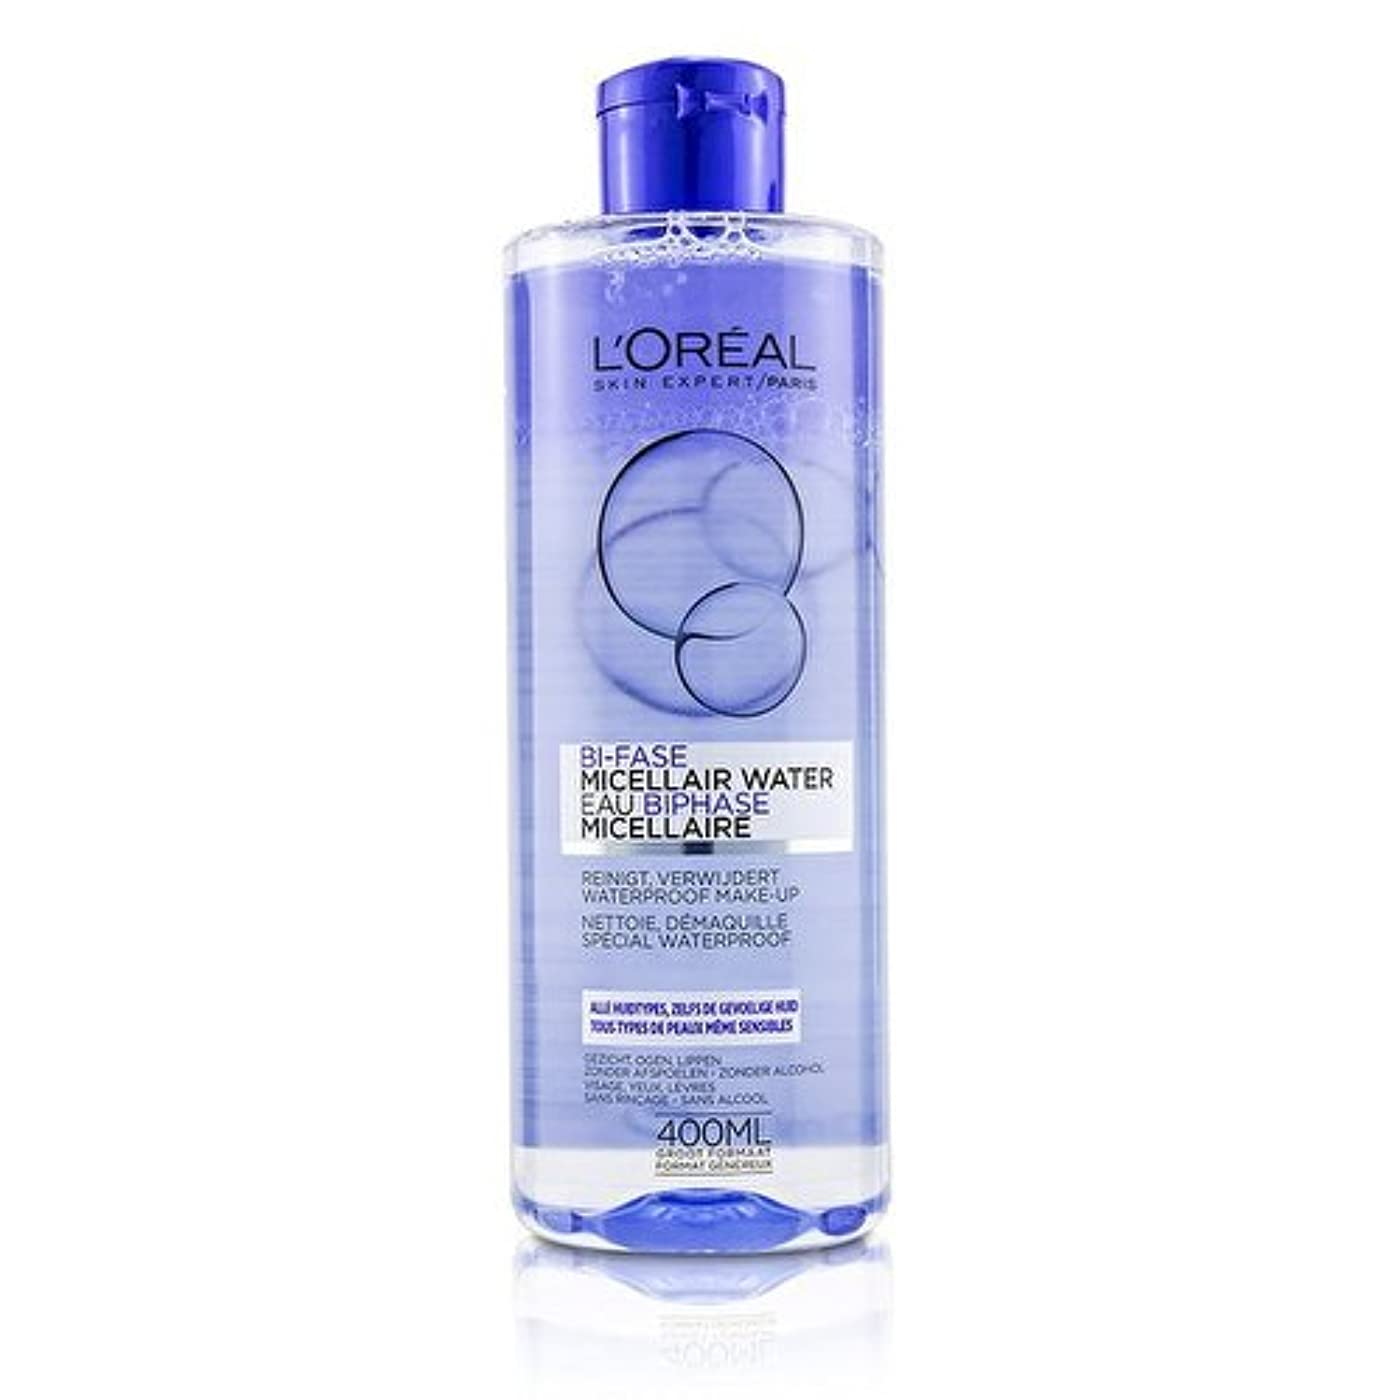 時々組み込む機転ロレアル Bi-Phase Micellar Water (Bi-Fase Micellair Water) - For All Skin Types, even Sensitive Skin 400ml/13.3oz並行輸入品